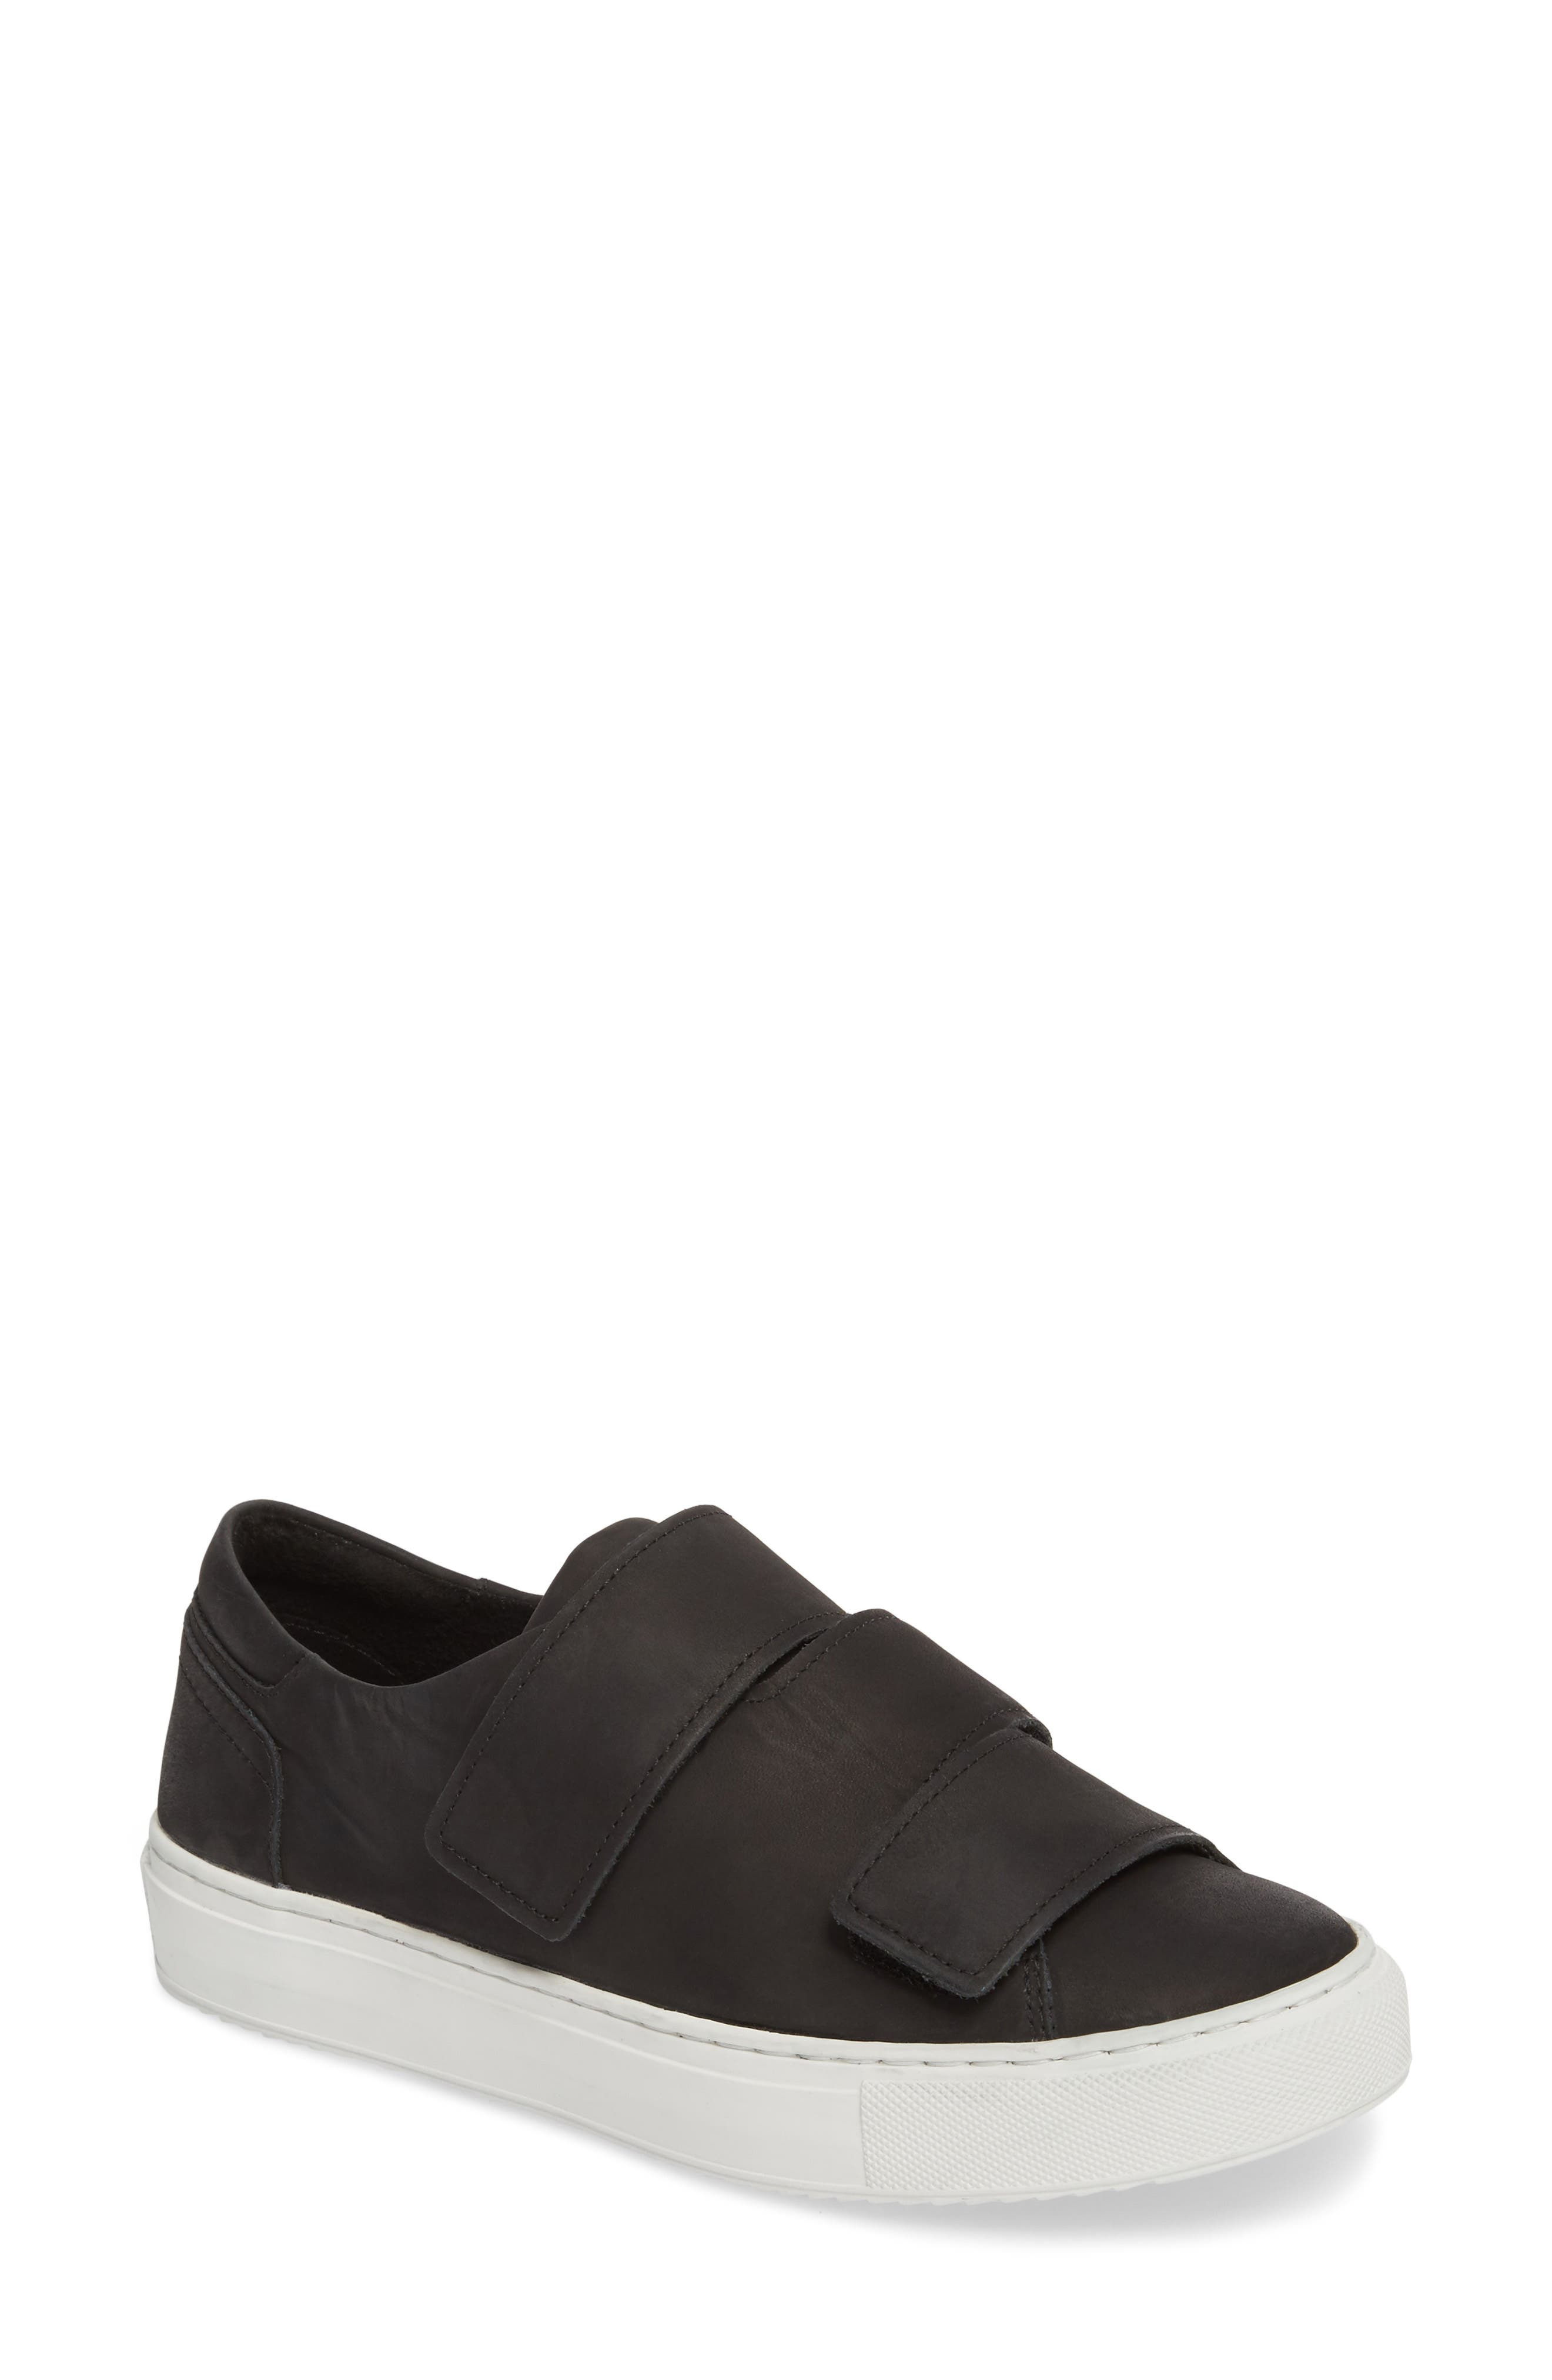 Rollover Alternating Strap Sneaker,                         Main,                         color,